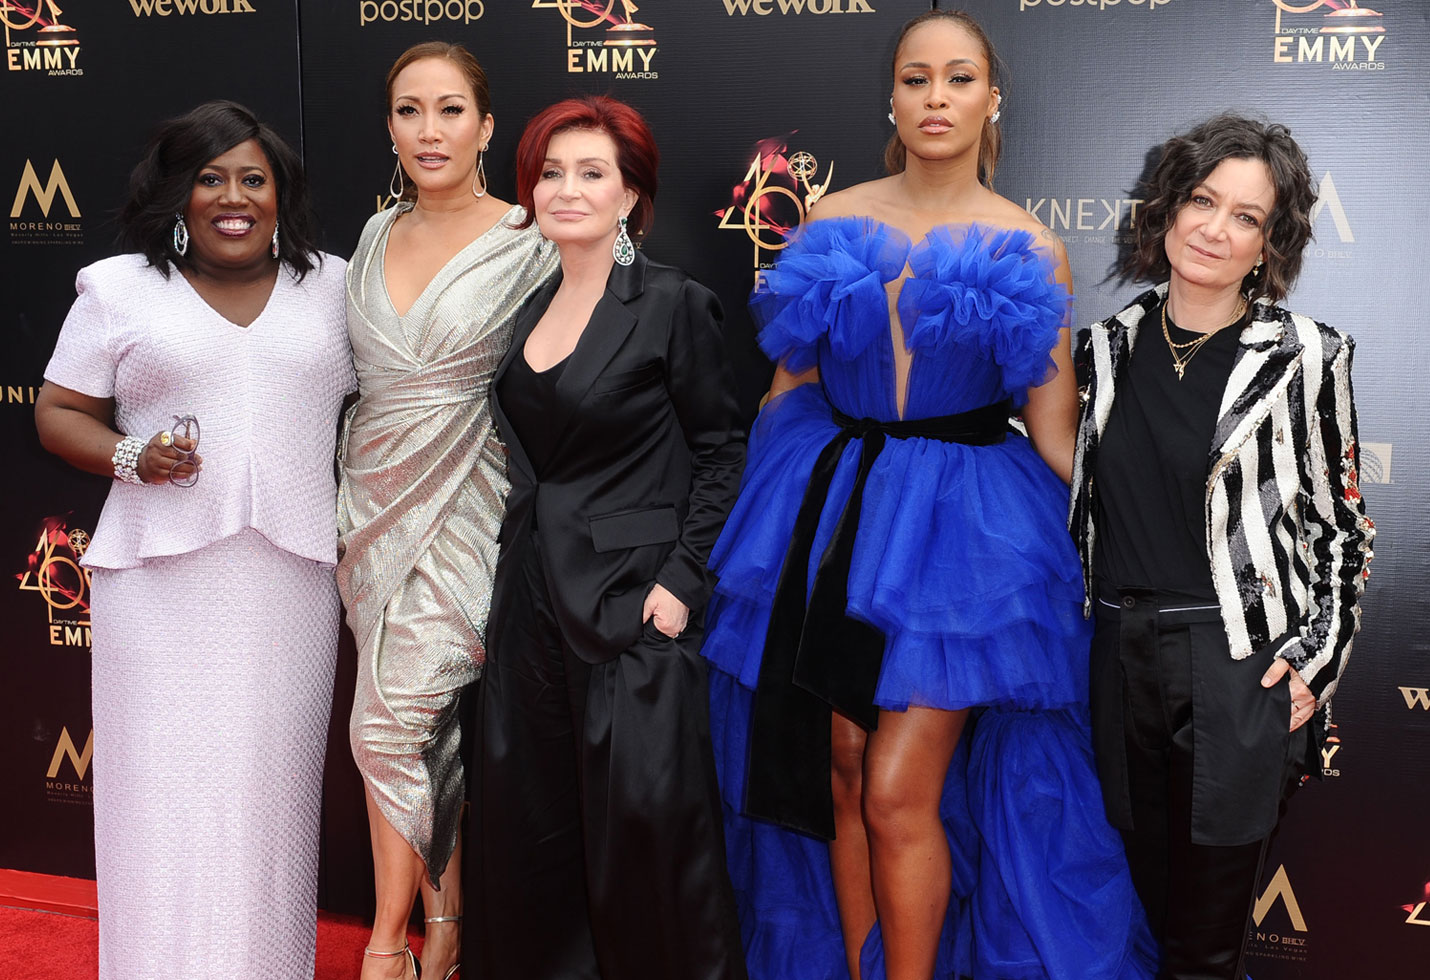 Best Dressed Emmys 2019 Daytime Emmys 2019 Red Carpet: The Best Dressed Of The Night